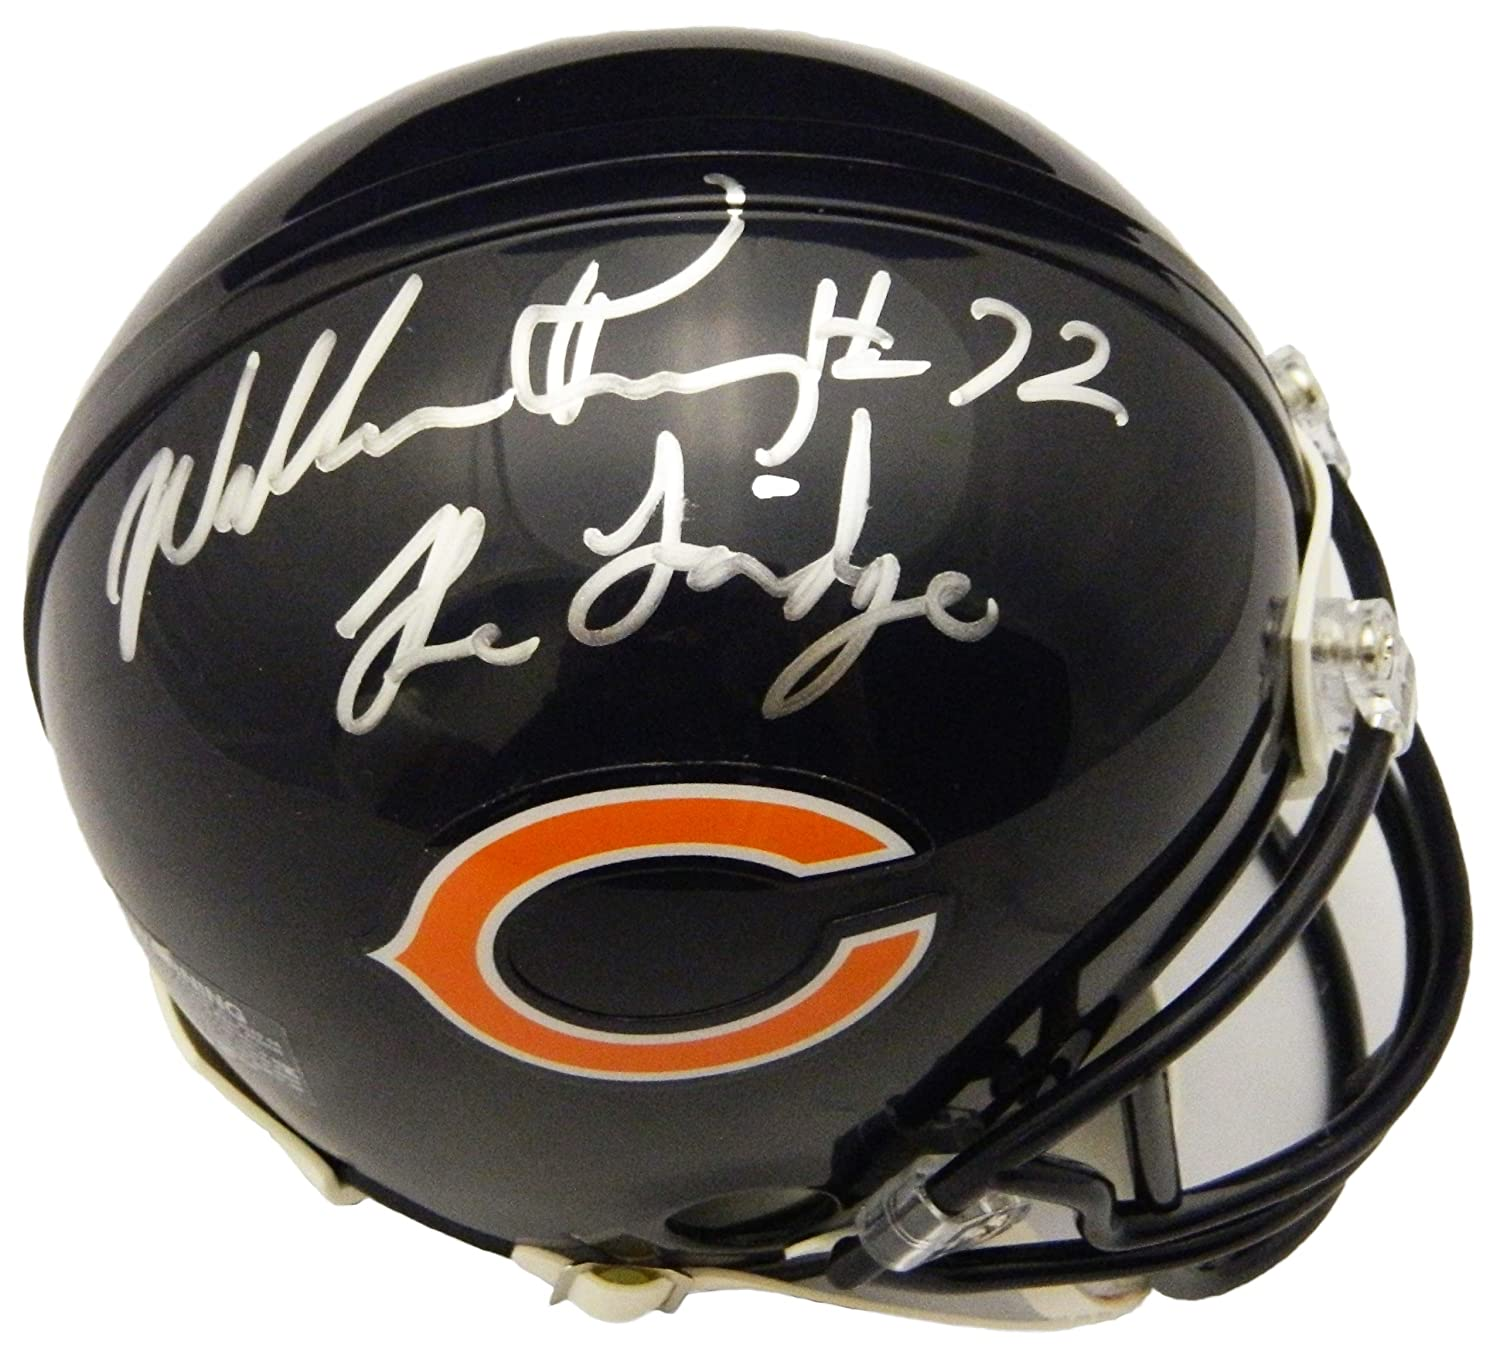 4a2e4be4e04 Amazon.com  William Perry Signed Chicago Bears Riddell Mini Helmet w The  Fridge  Sports Collectibles